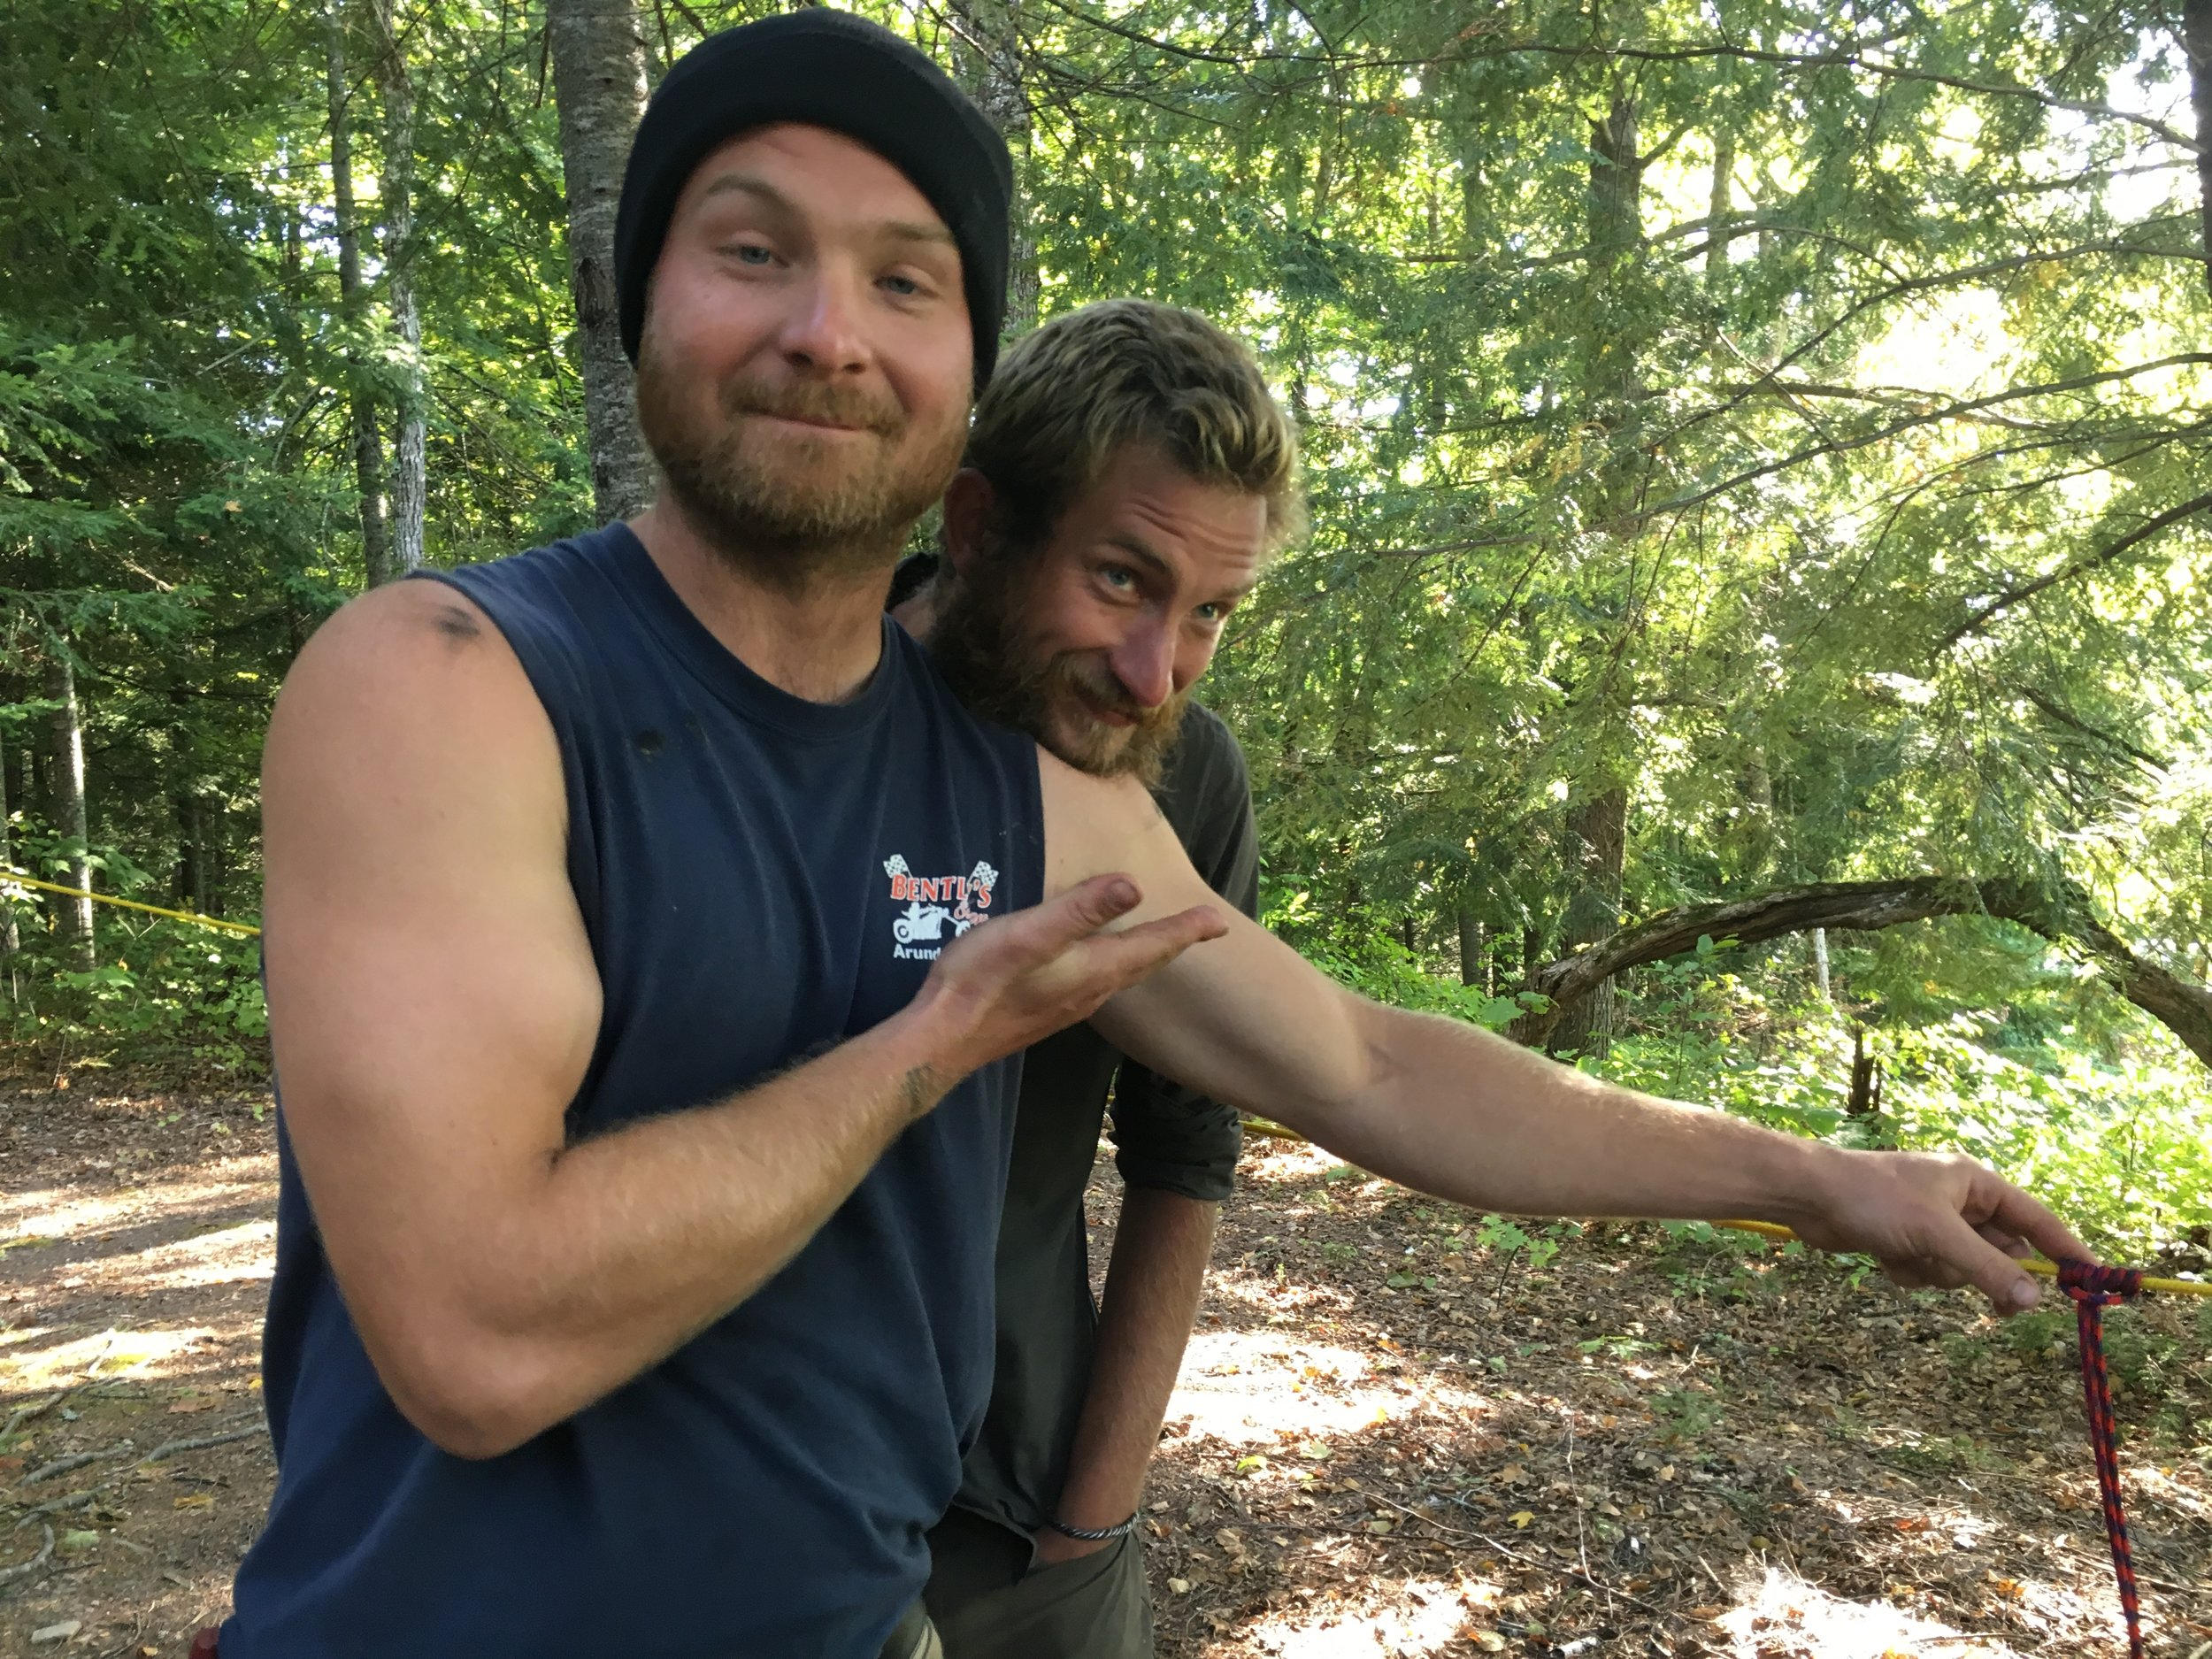 Colin and fellow Jack Mountain Bushcraft instructor Chris